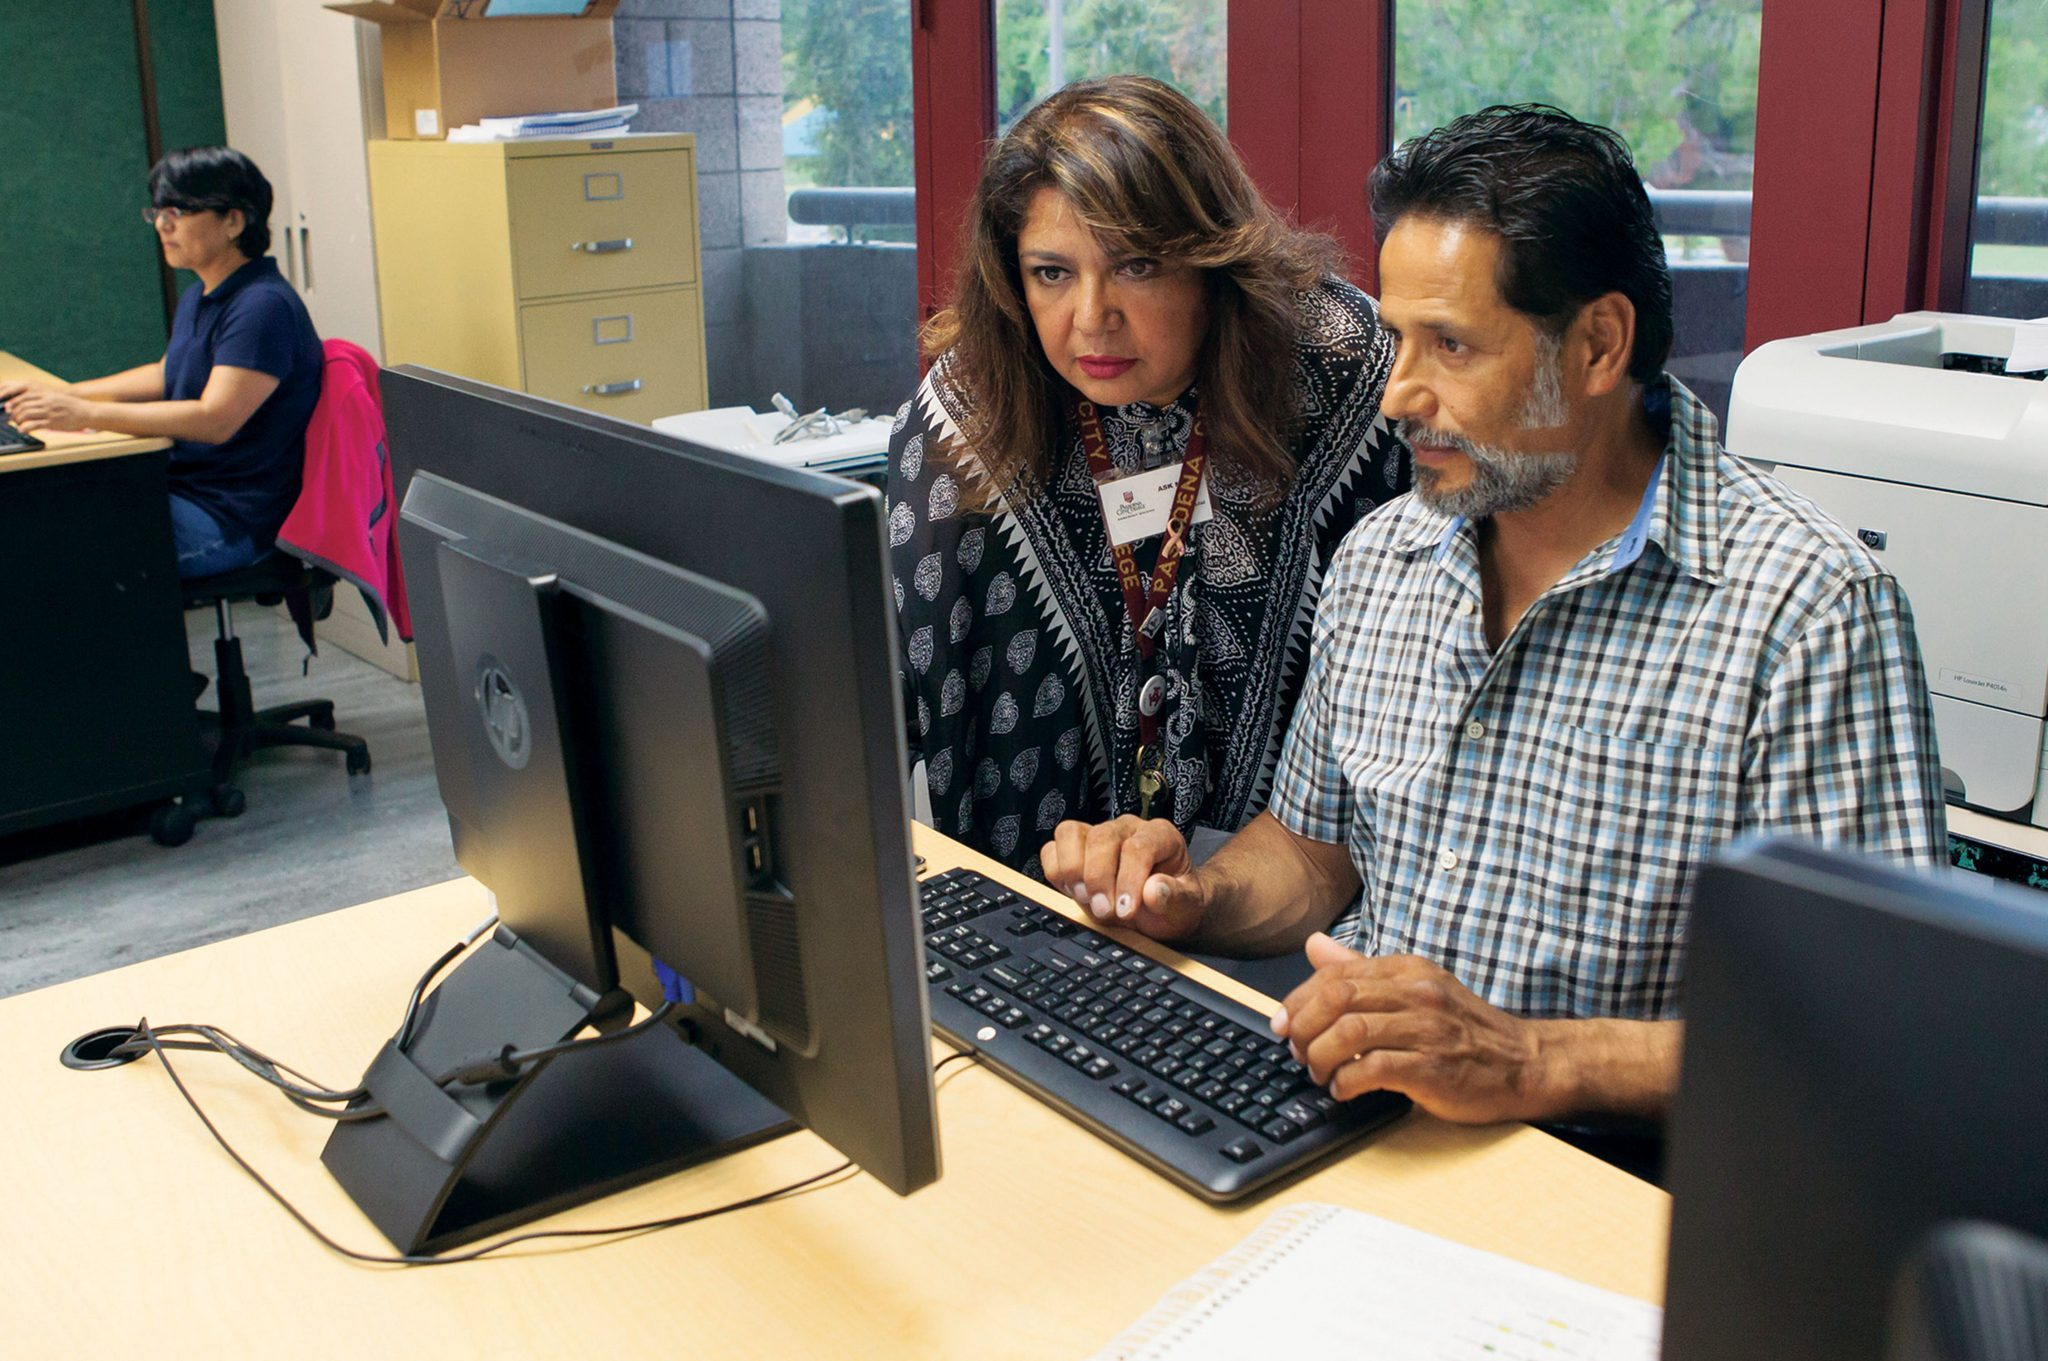 Katja Liebing/Courier Teresa Deukmedjian is helping student Rogelio Moreno of Pasadena in her bilingual Computer Keyboarding class in the Villa Parke Community Center on September 14, 2015. The class is one of many tuition free courses that is being offered at Pasadena City College's Noncredit Division, the Community Education Center.